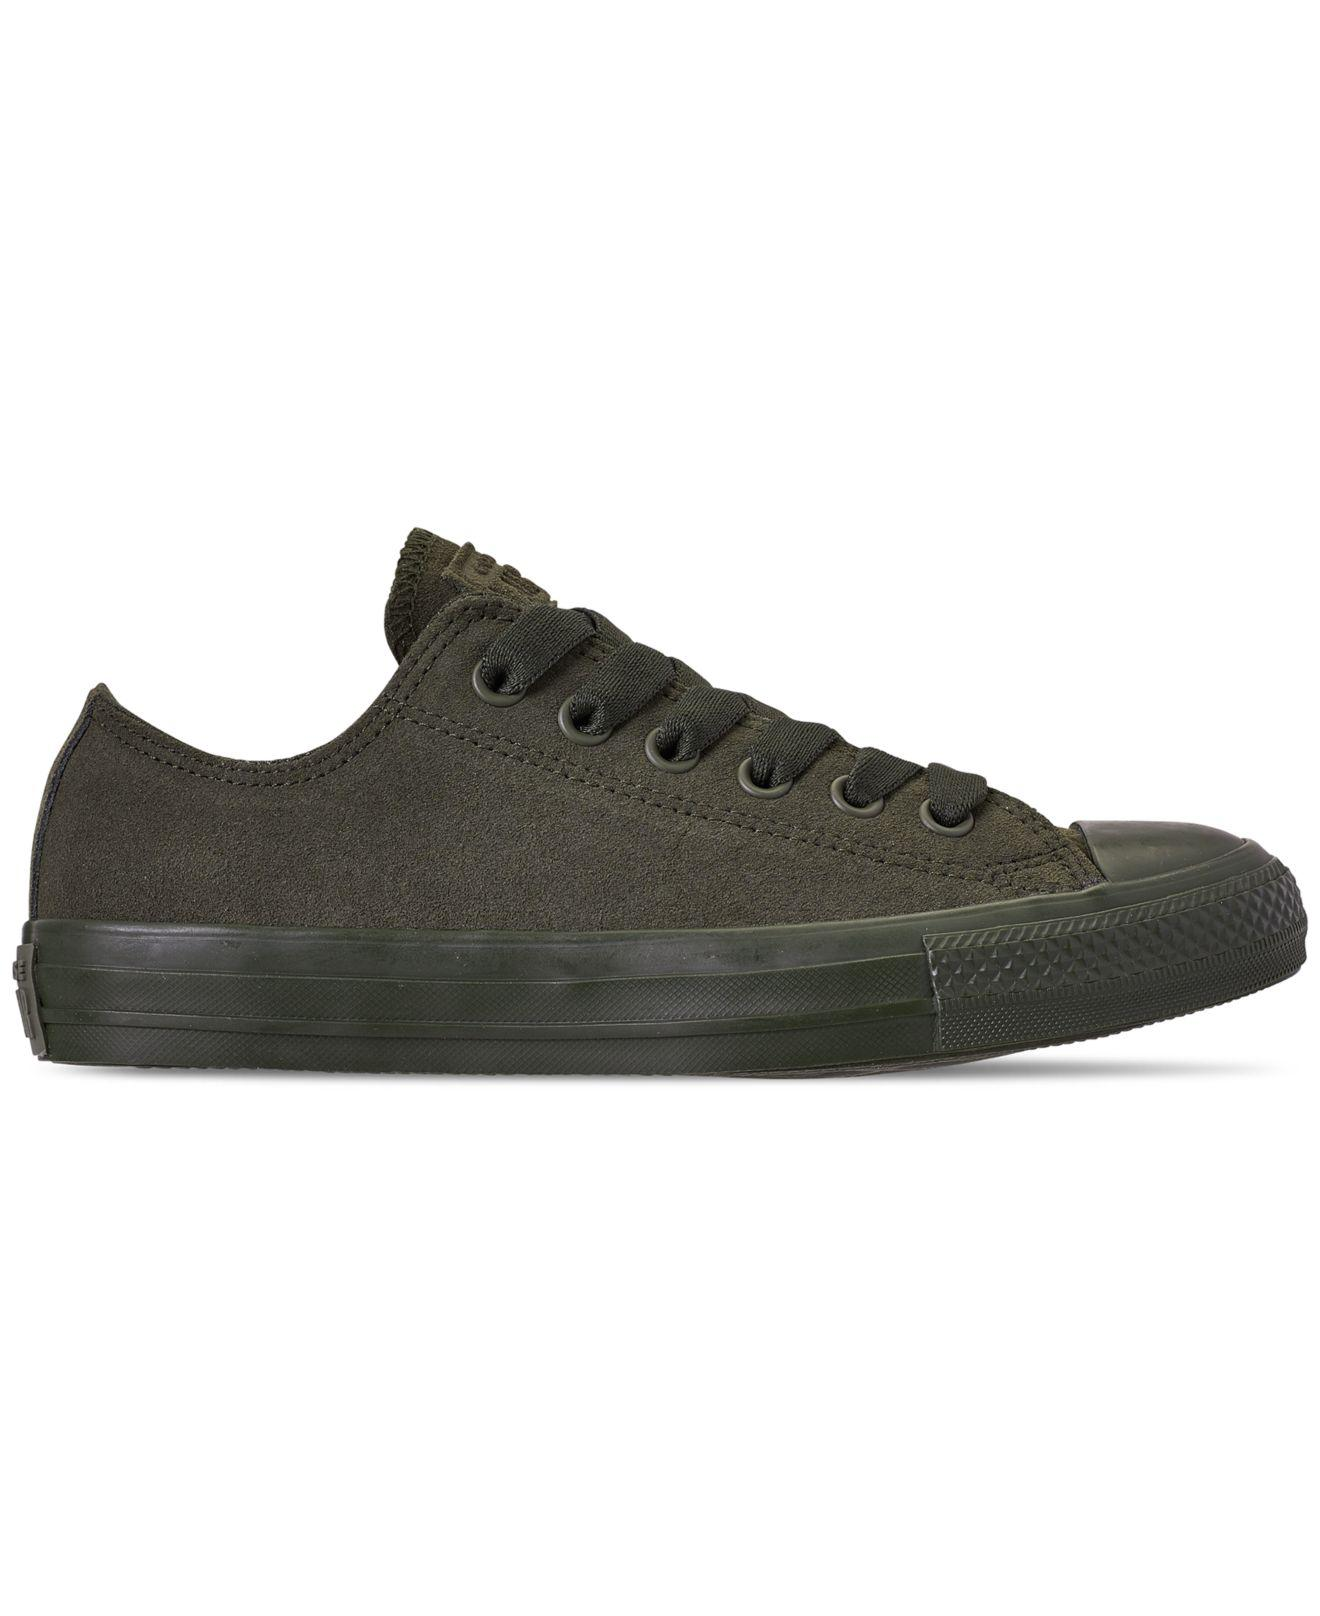 9ac30be1ba32 Lyst - Converse Unisex Chuck Taylor All Star Suede Mono Color Low Top Casual  Sneakers From Finish Line in Green